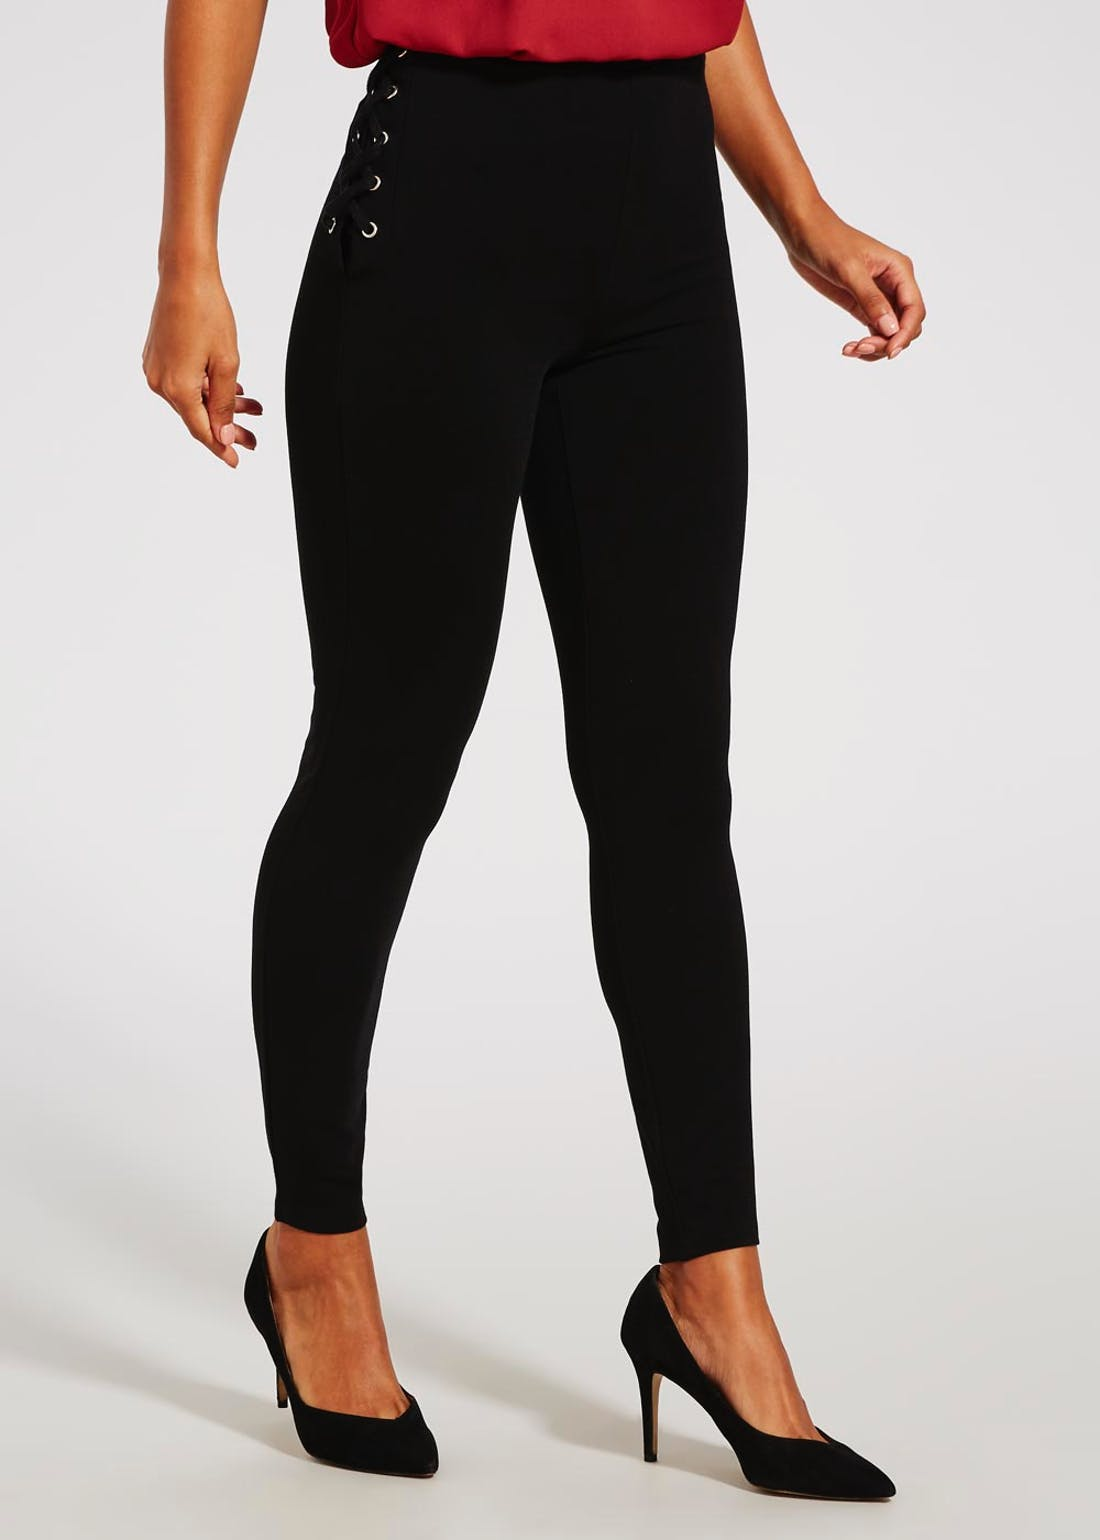 Body Shaper Lattice Leggings